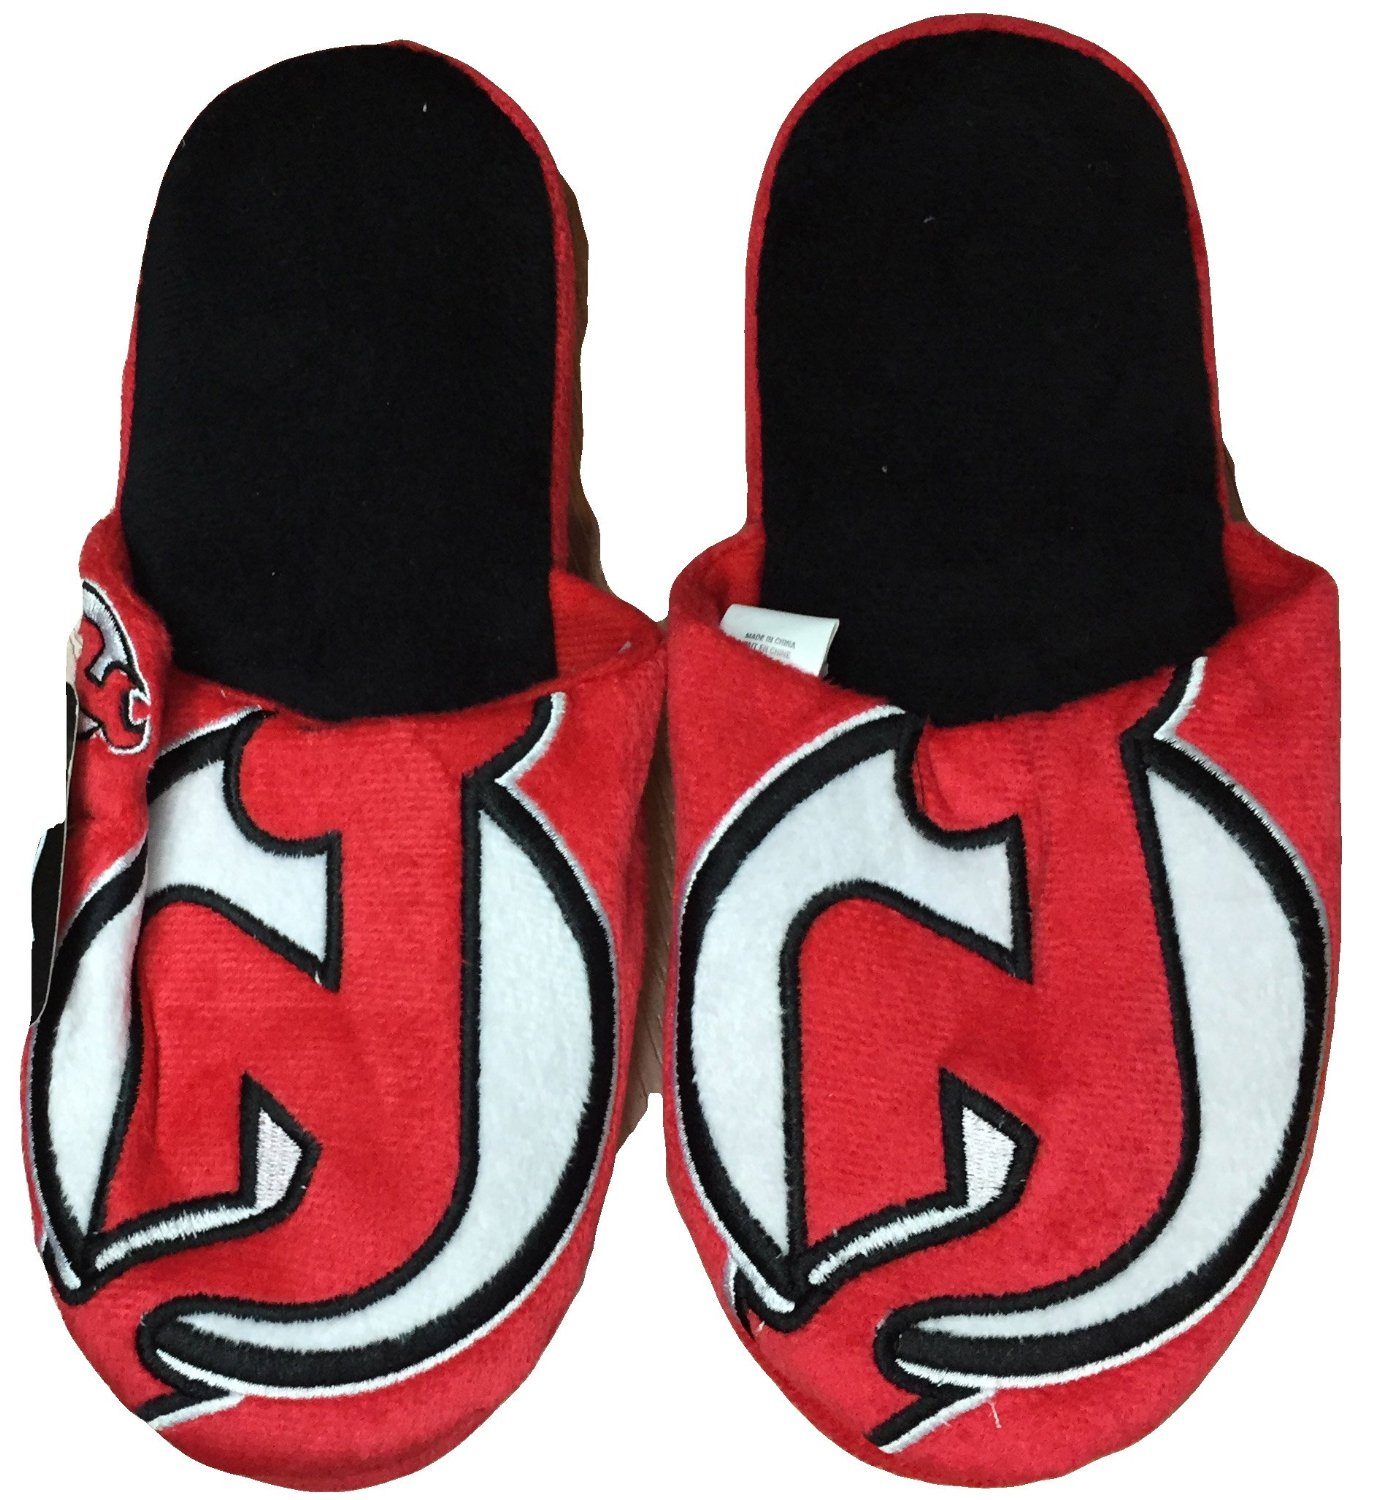 NHL New Jersey Devils Official Slippers by Forever Collectibles (Large (11-12))